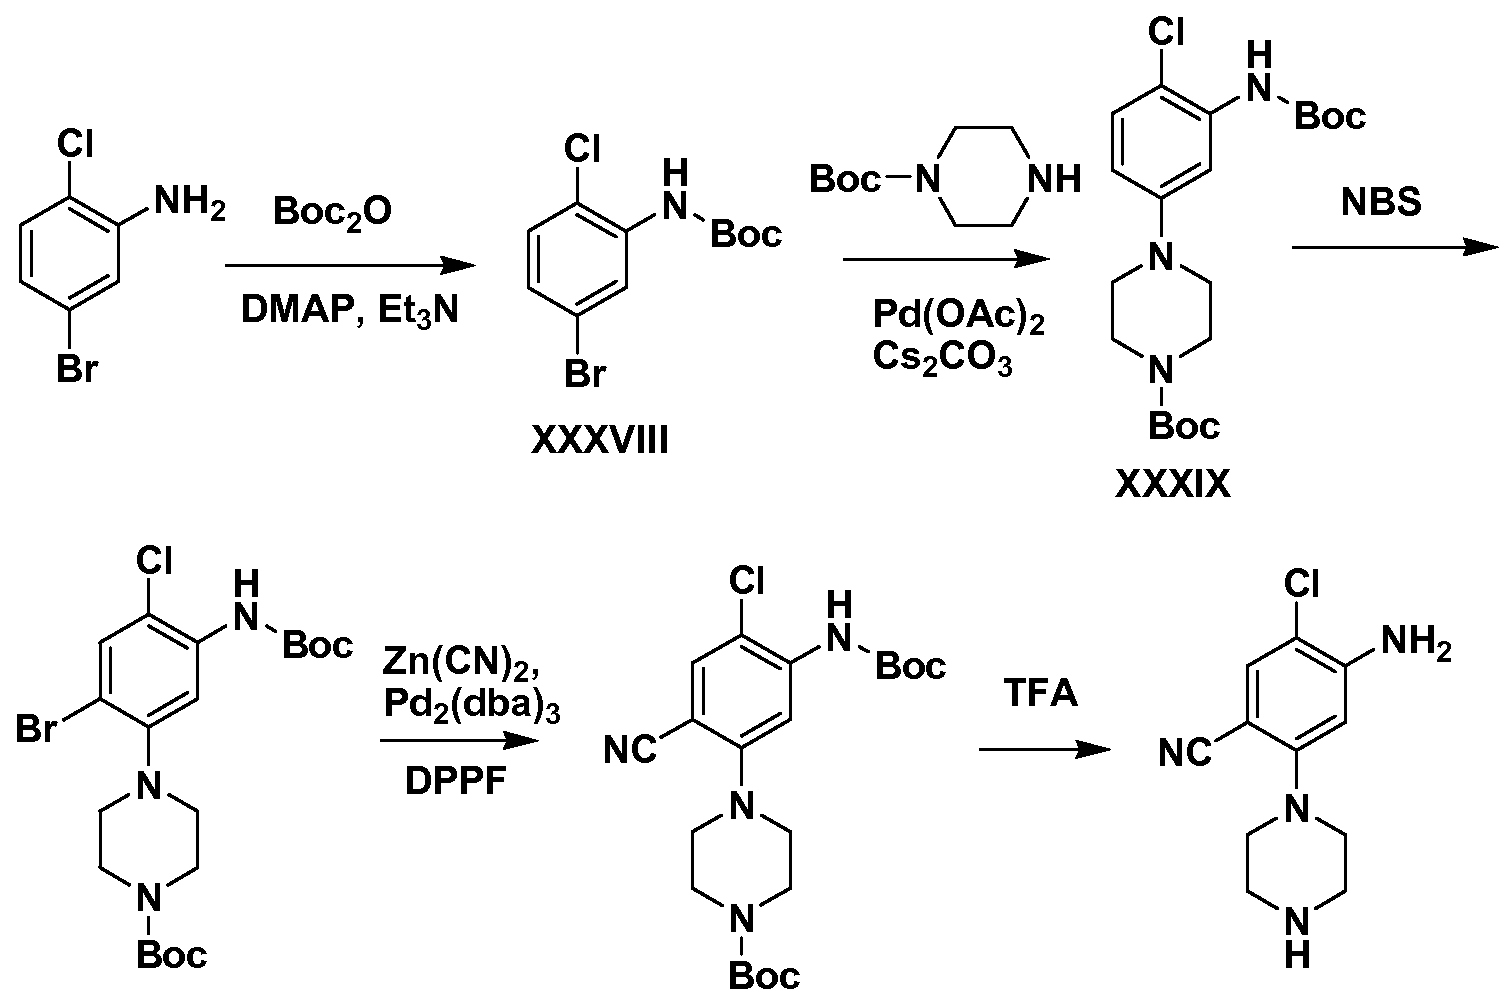 bromination of aniline Aniline has the most ring activating substituent (-nh2) so it will react to completion to give the tri-substituted product phenol- oxygen is more electronegative than nitrogen anisole- carbon still holds some electronegativity from hydrogen, more than that of the oxygen from the single hydrogen.